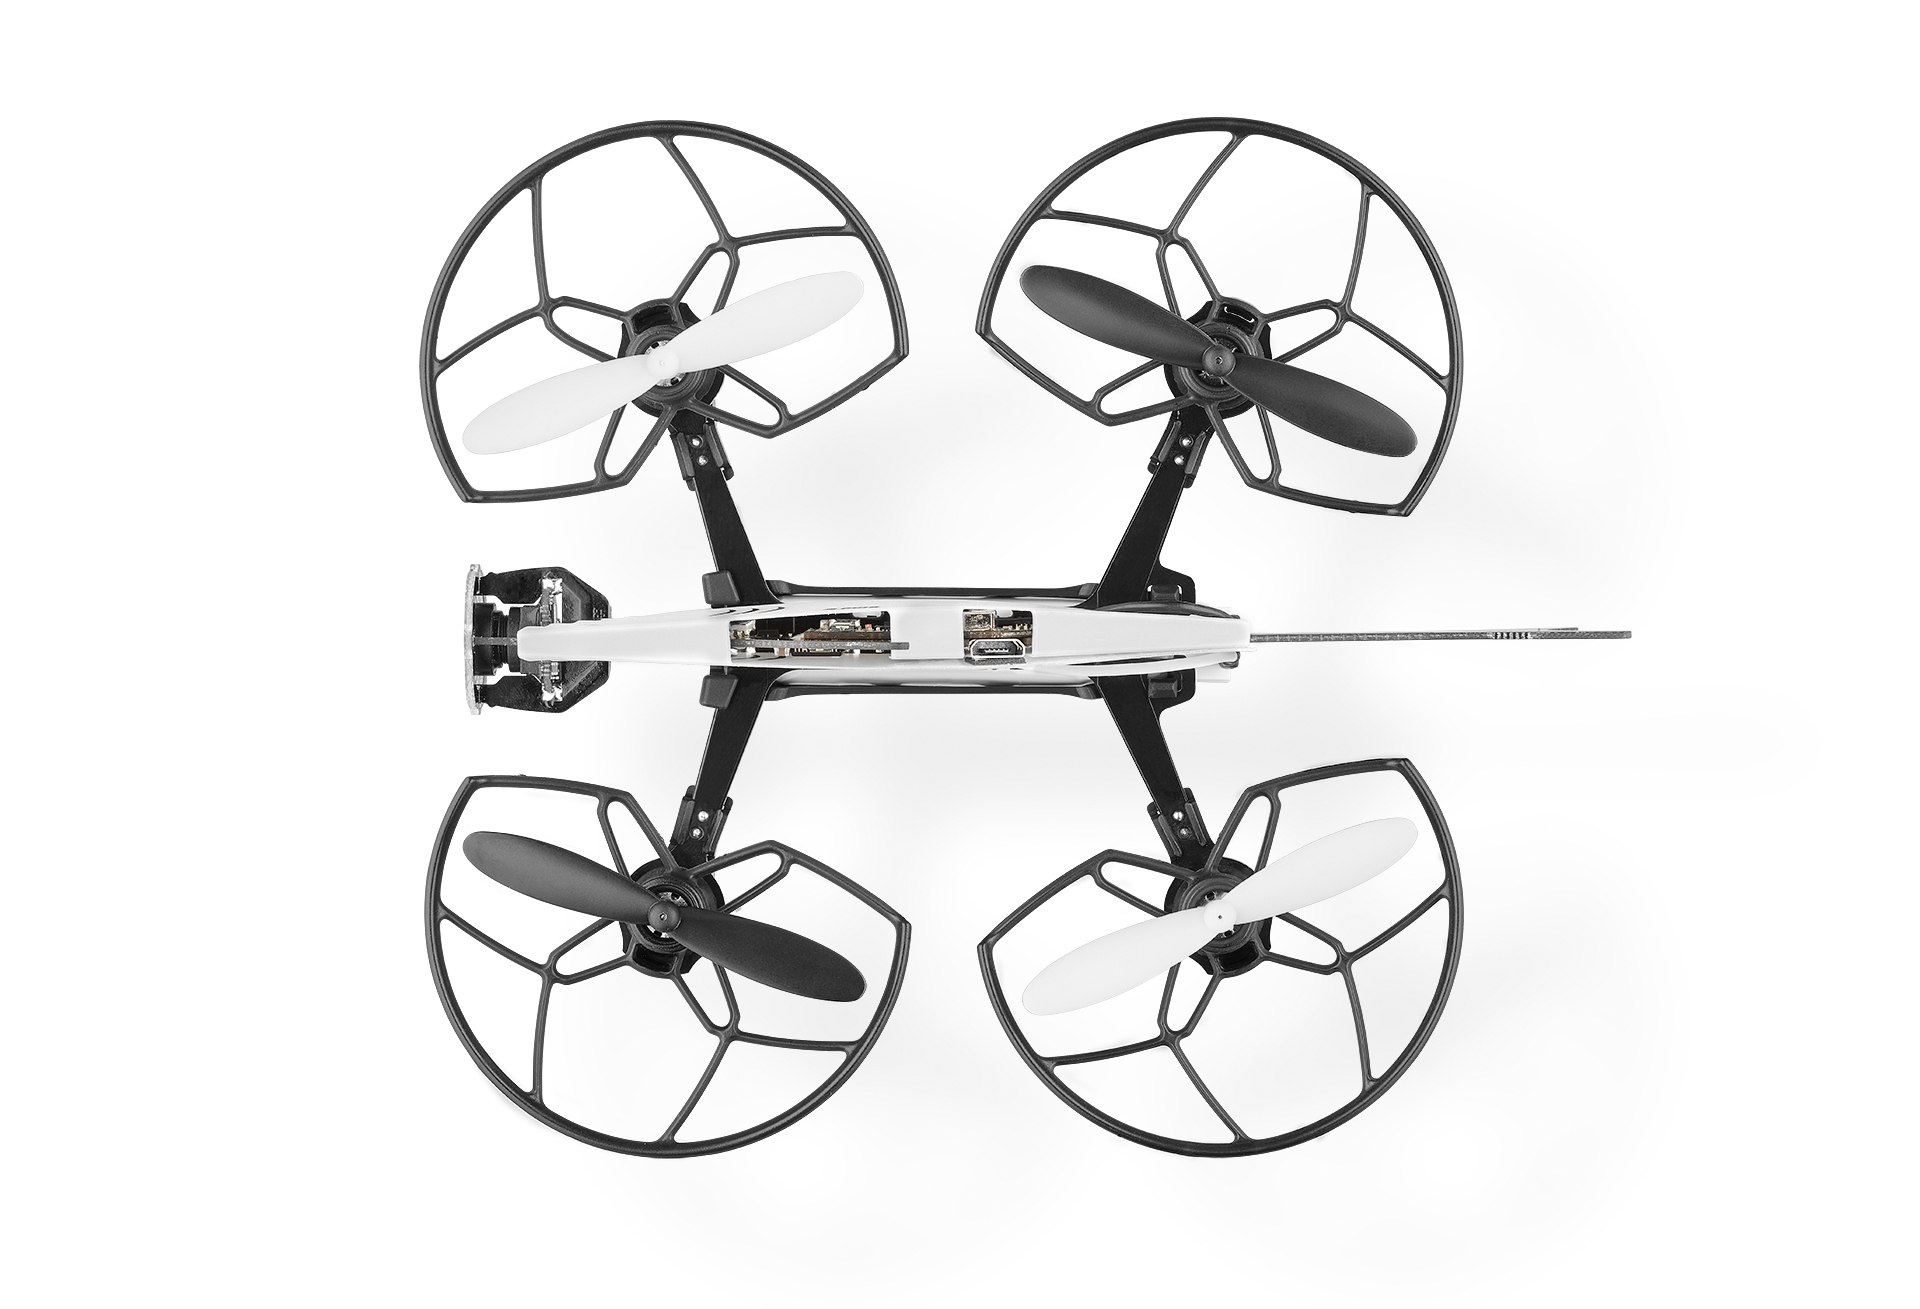 Fat Shark 101 Drone Training System And Starter Kit